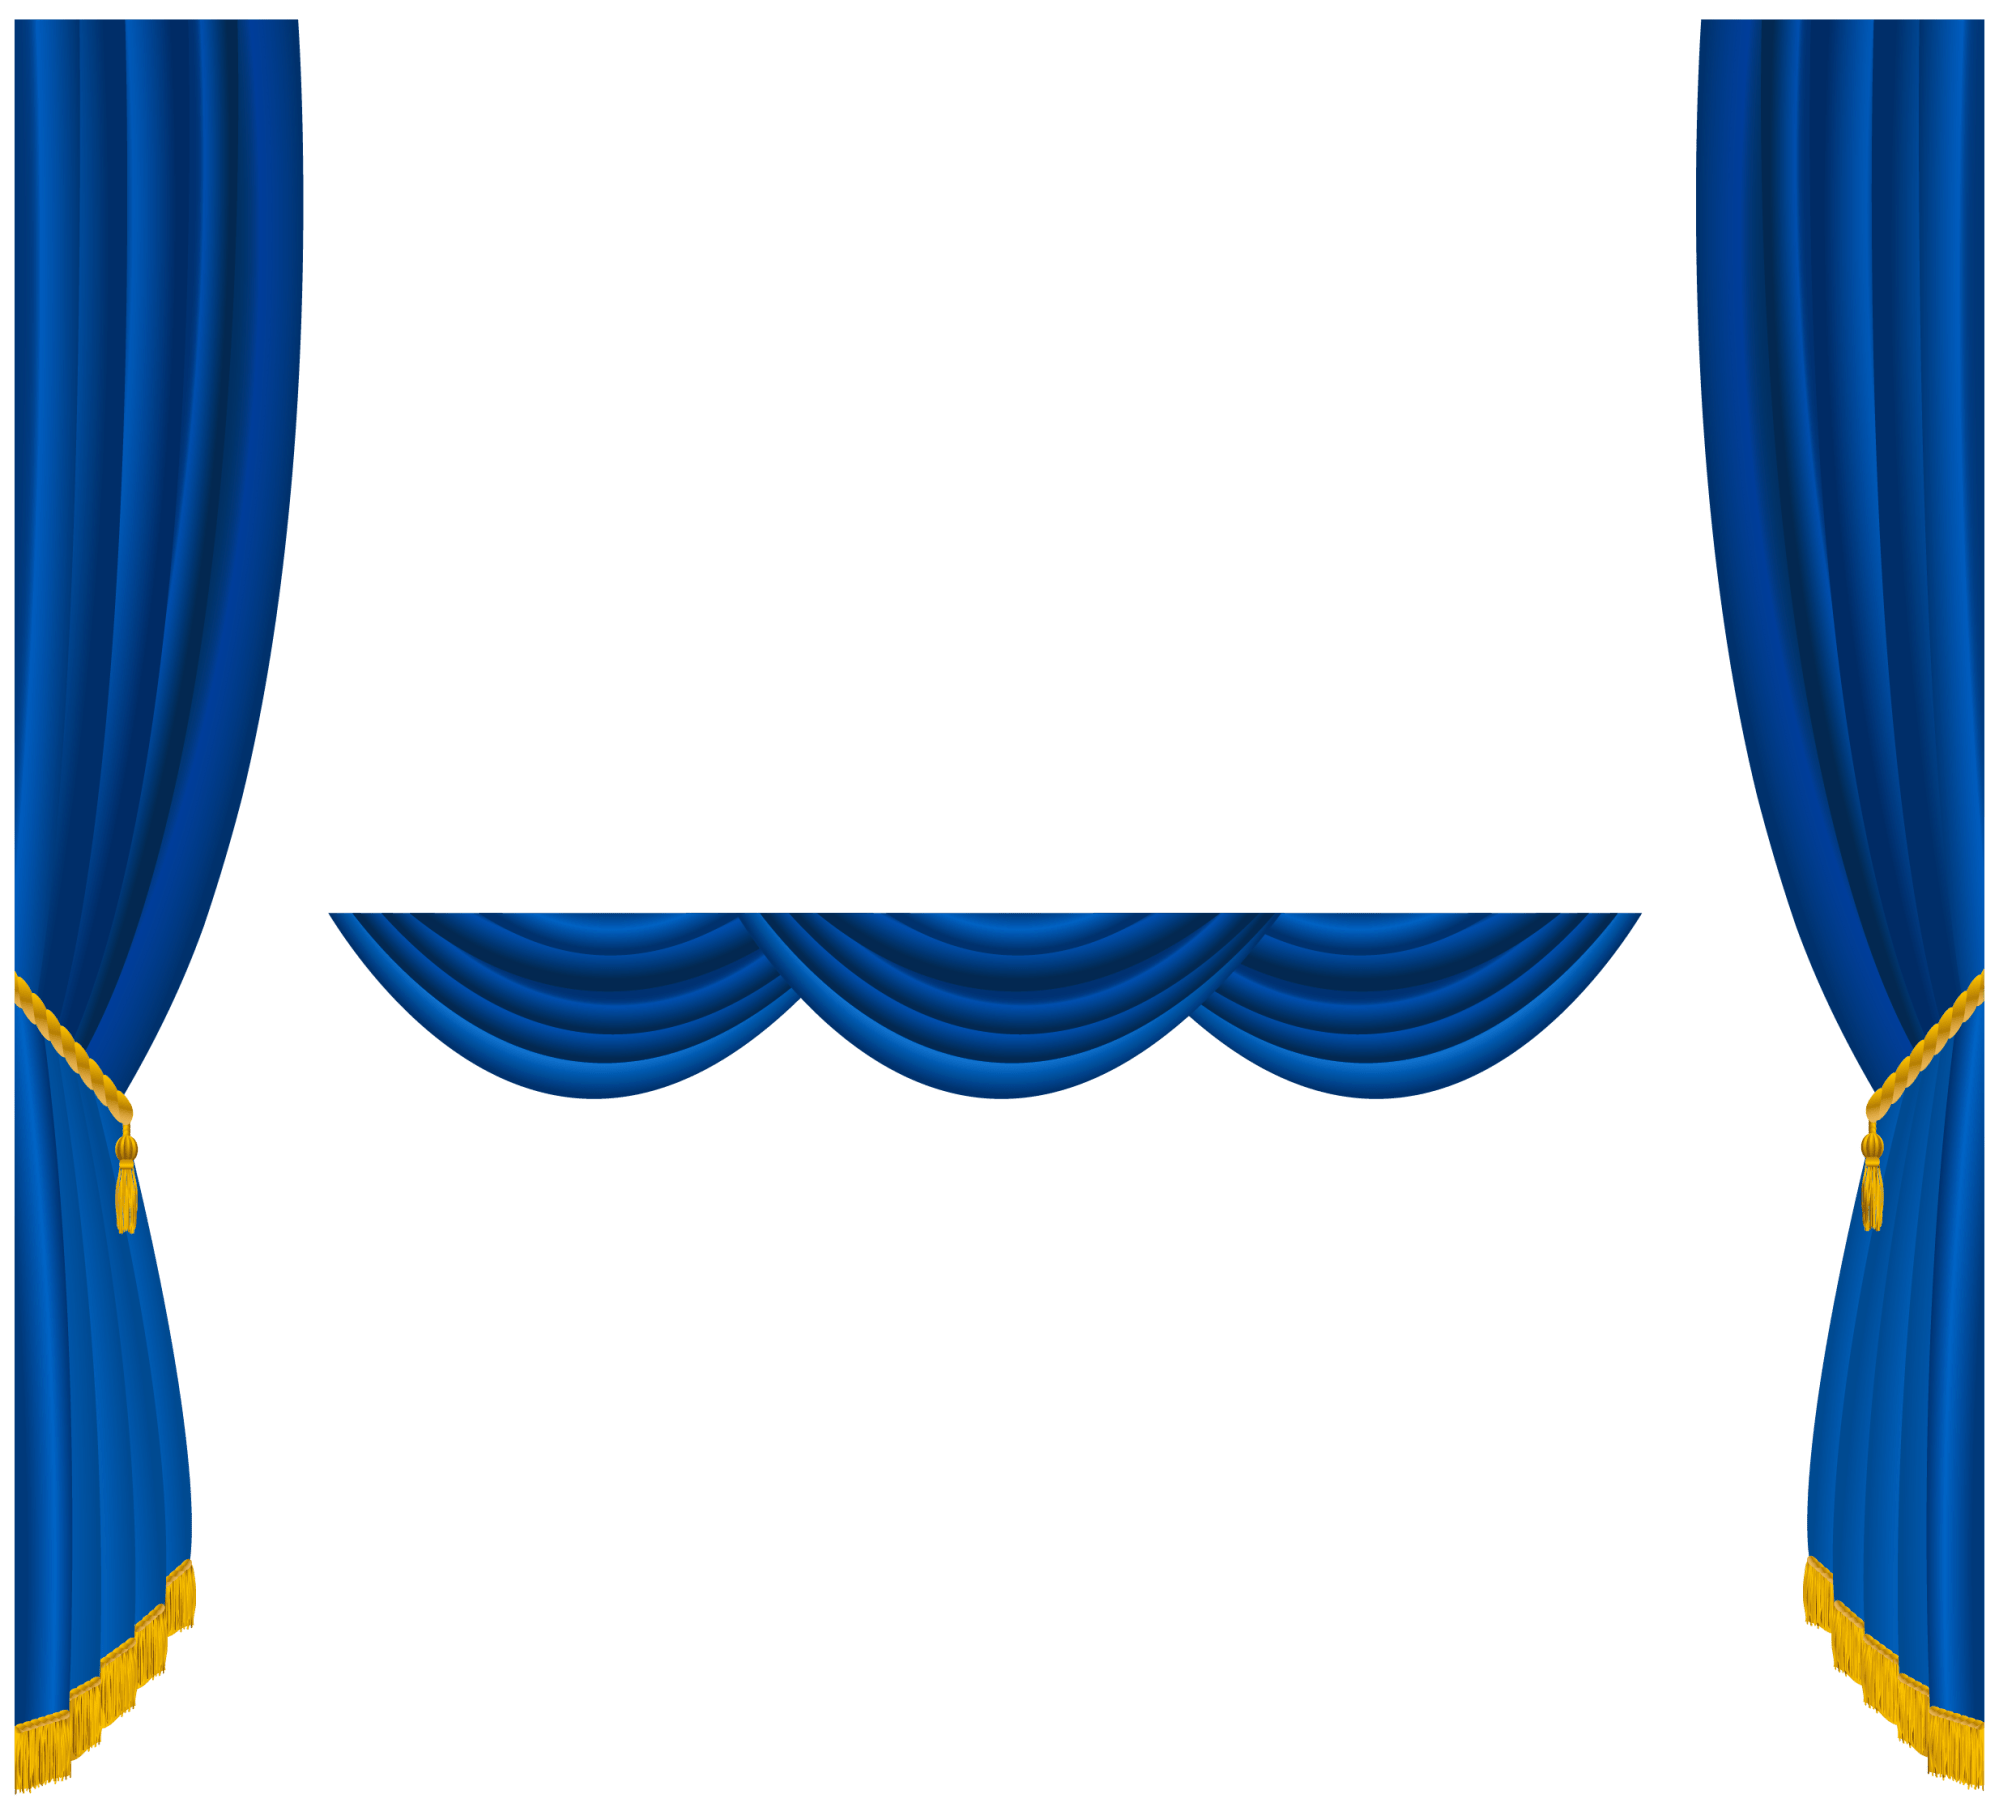 hight resolution of 2468x2231 transparent blue curtains decoration png clipartu200b gallery